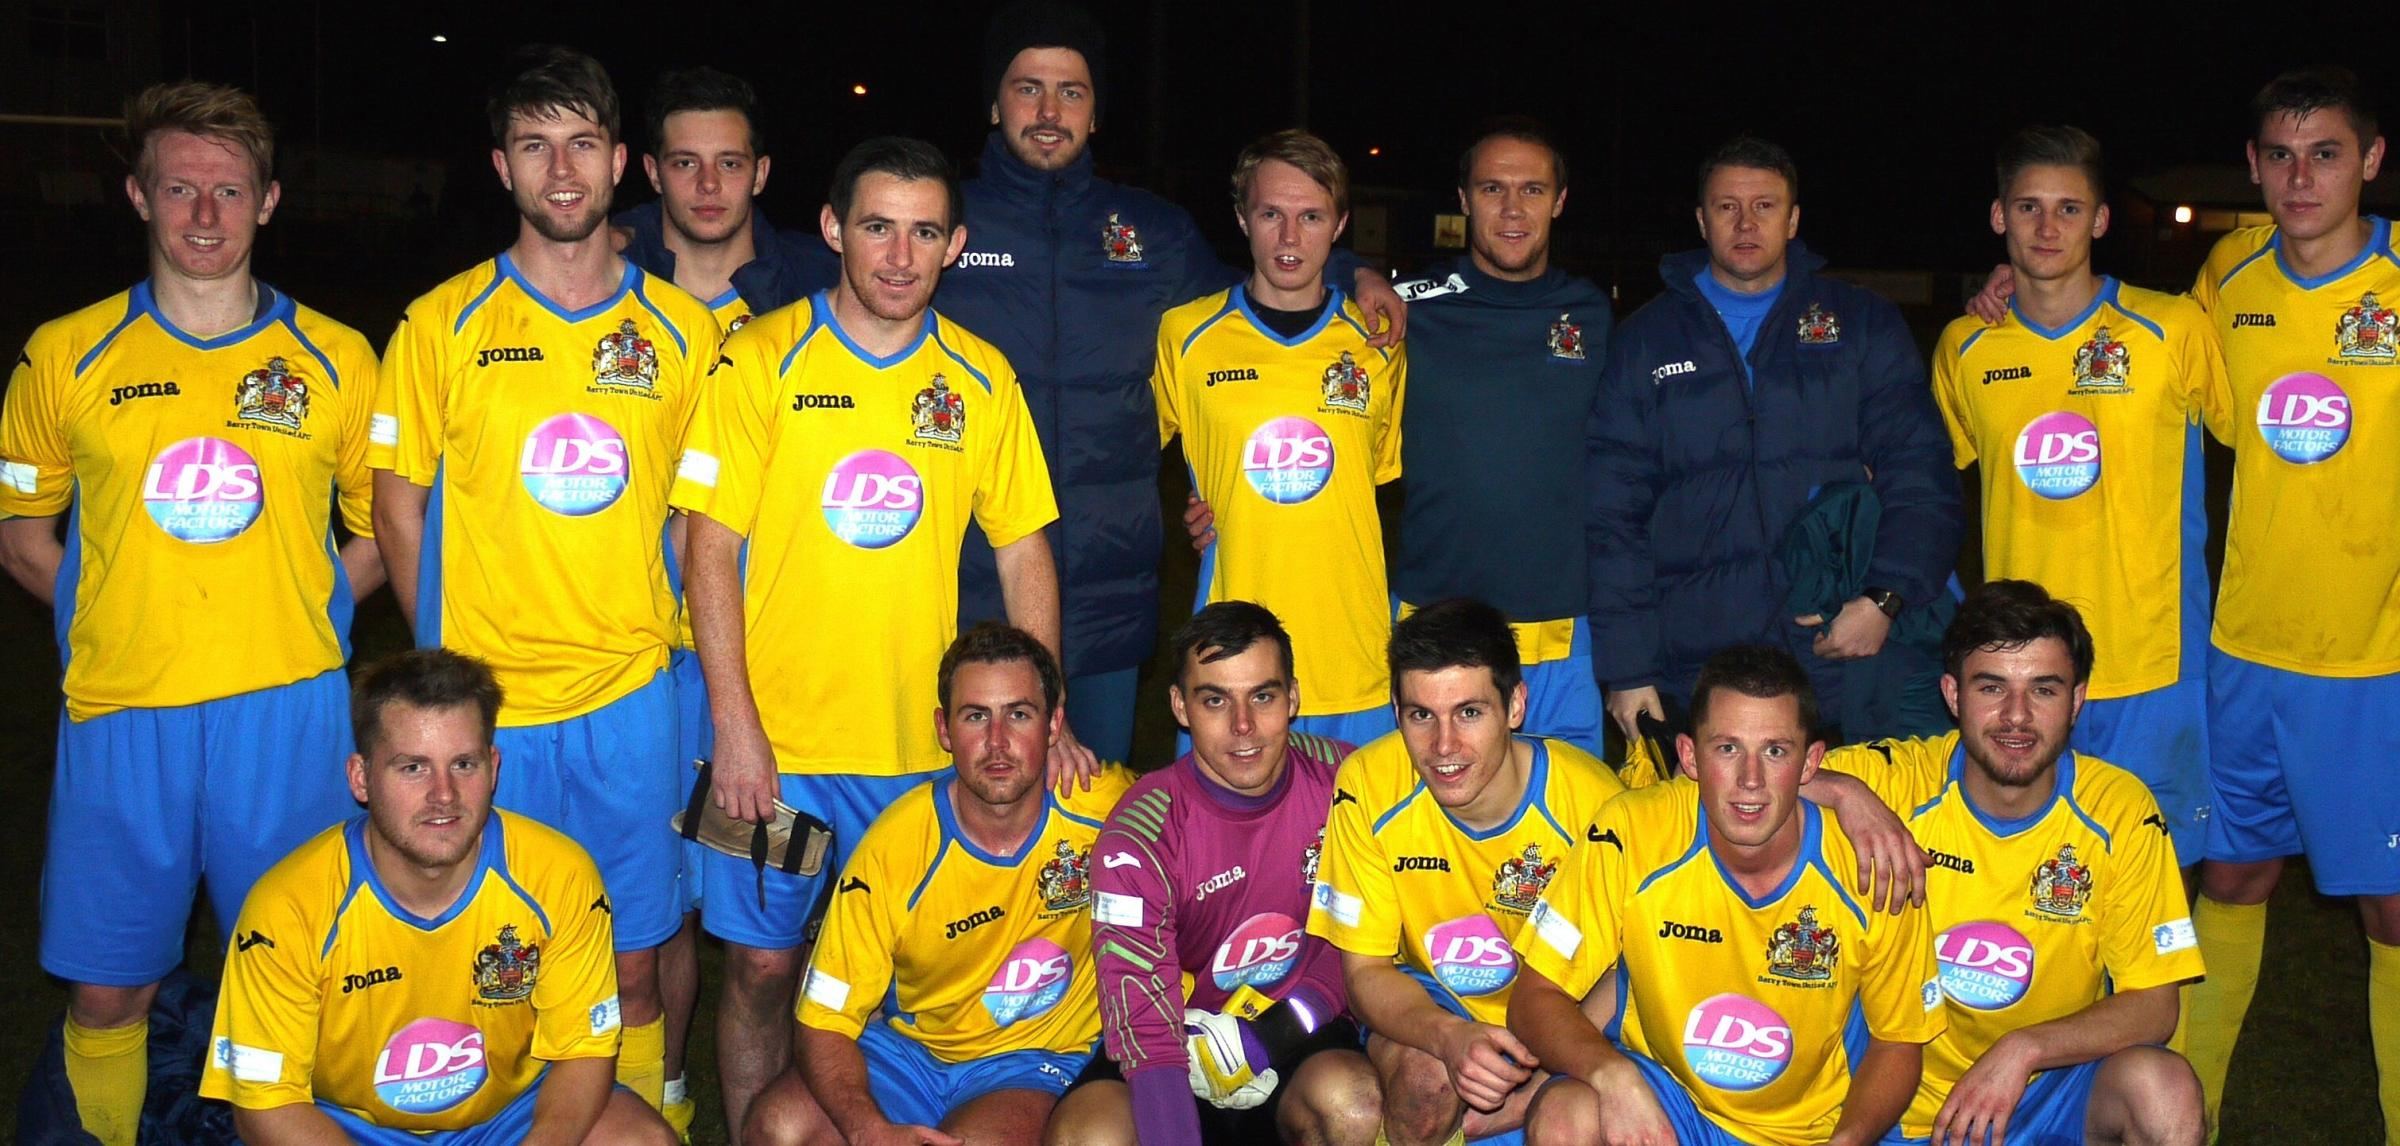 HOME GAMES: Barry Town United players are gearing up for their final home games of a successful season.